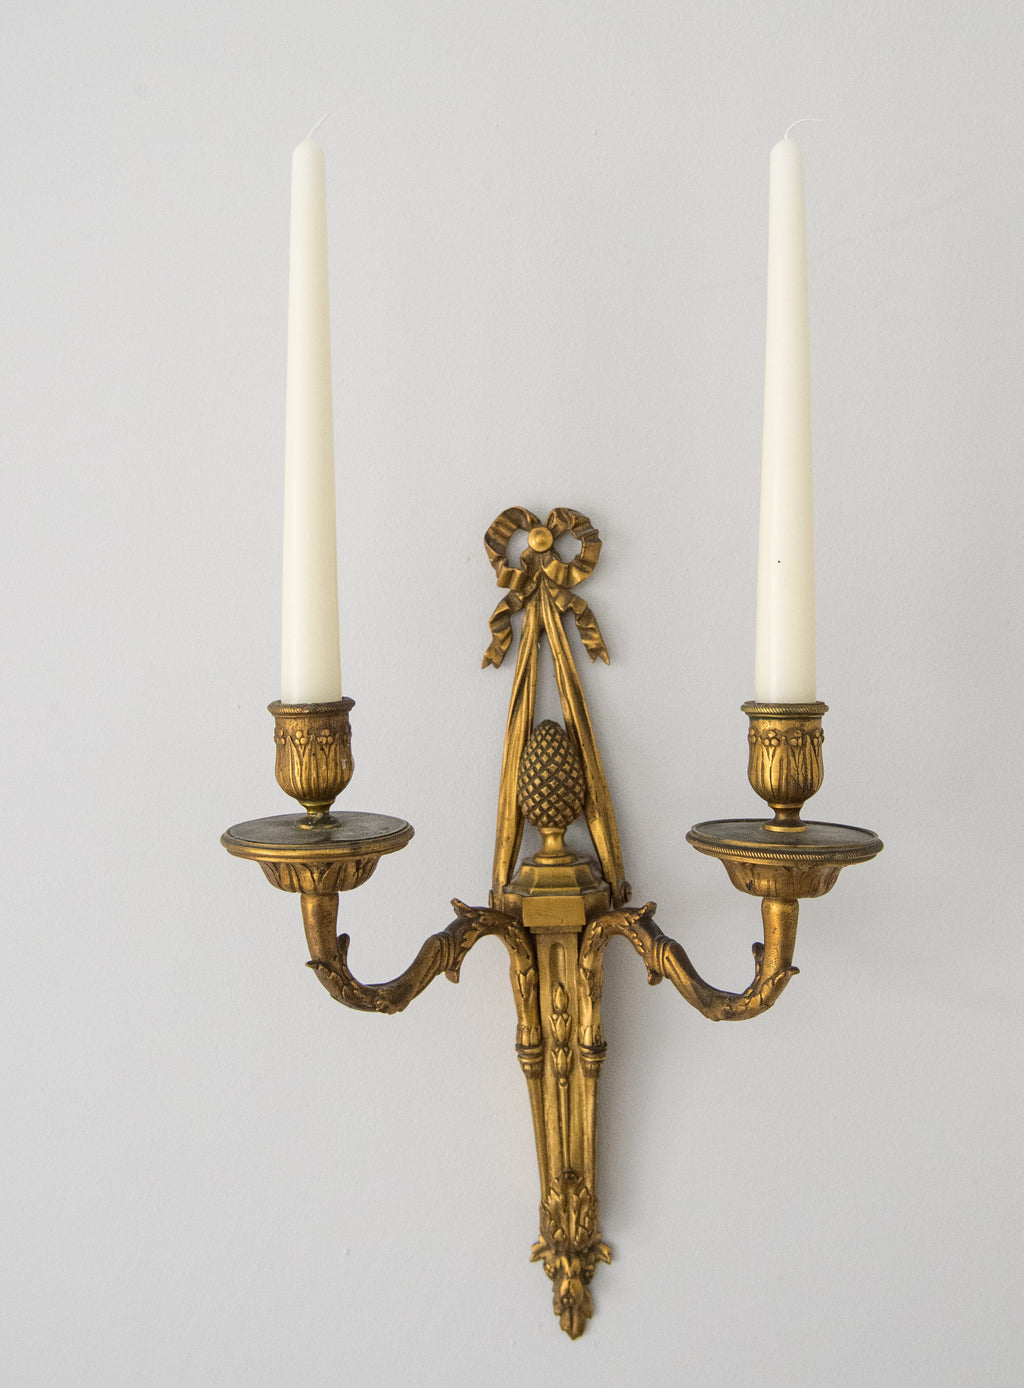 A Pair Of 19th Century Gilded Ormolu Two Branch Wall Sconces.English